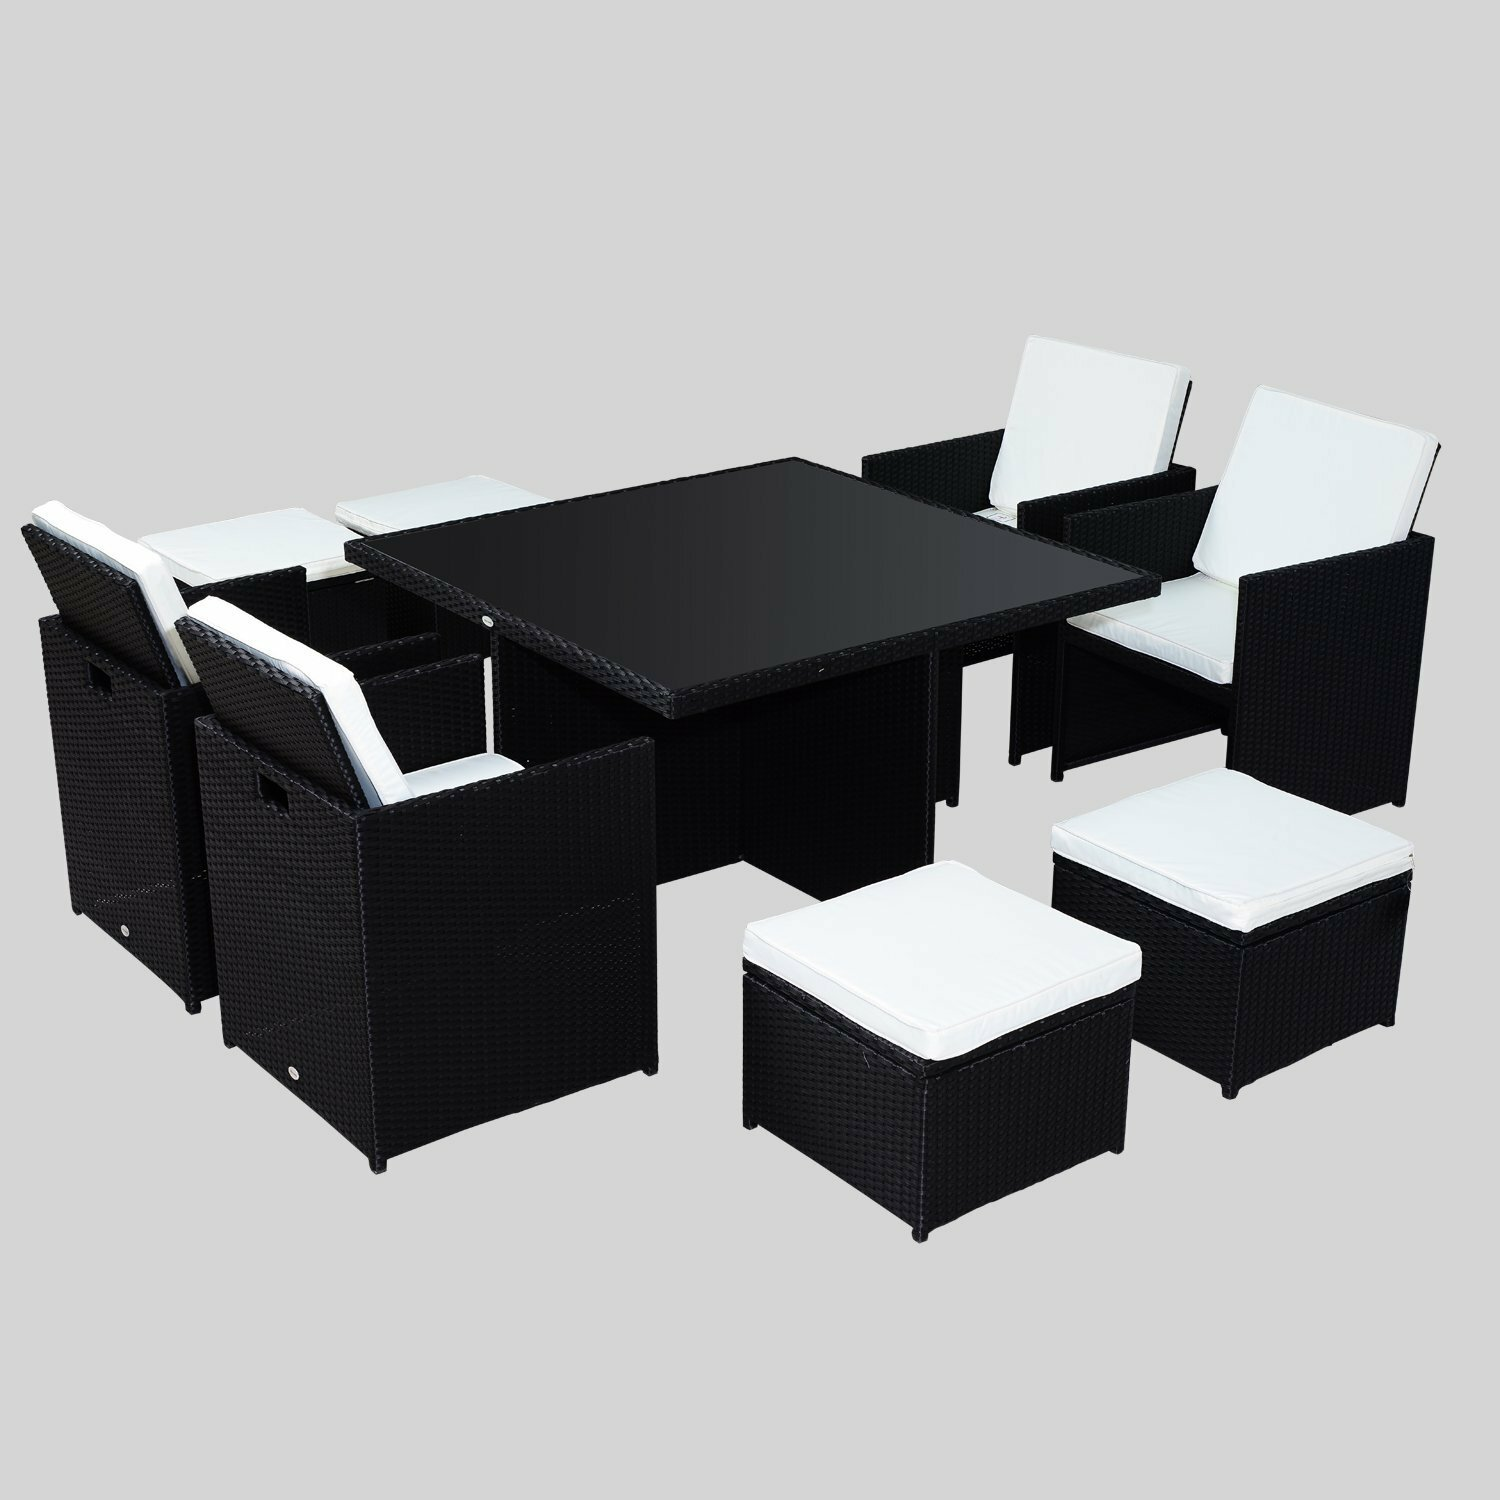 Hom Outsunny 8 Seater Dining Set with Cushions